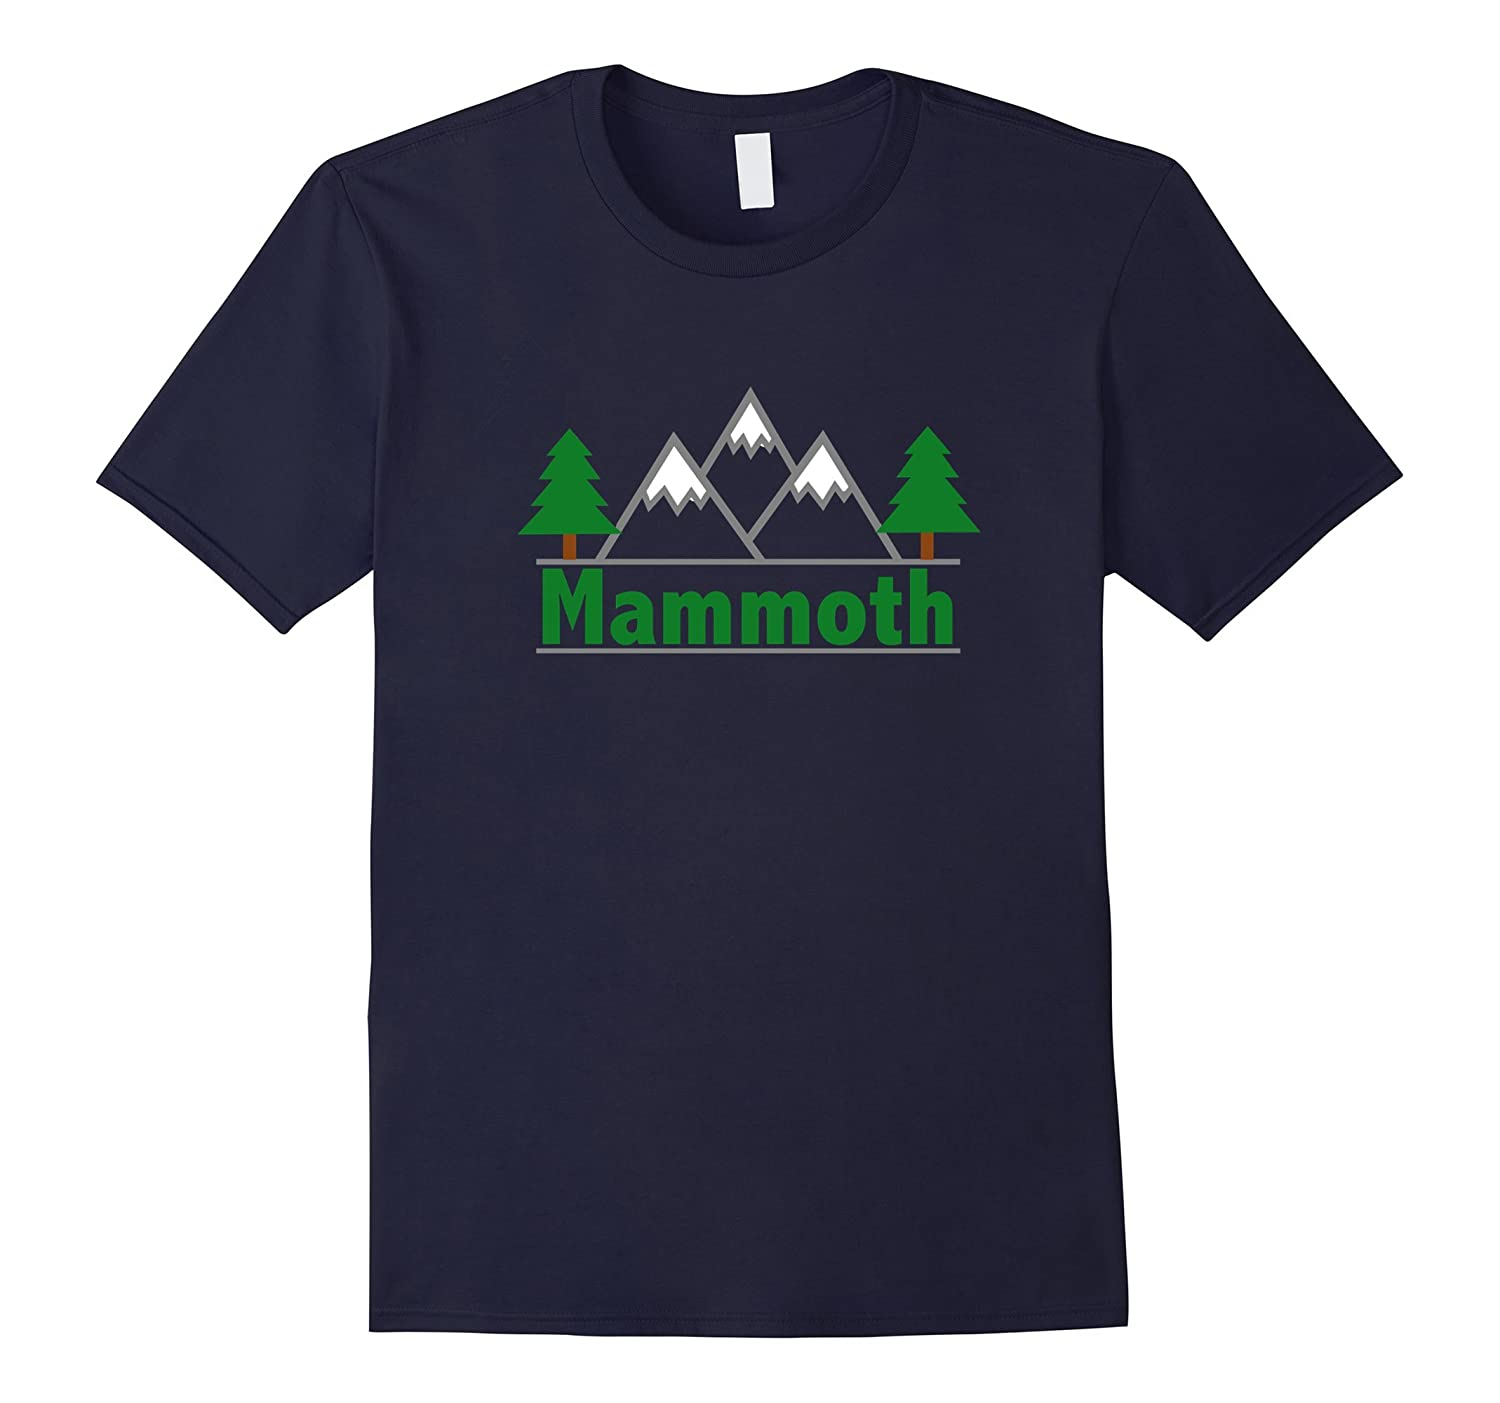 Mammoth California – Mountain Trees Color T-Shirt-RT – Rateeshirt 6893248751